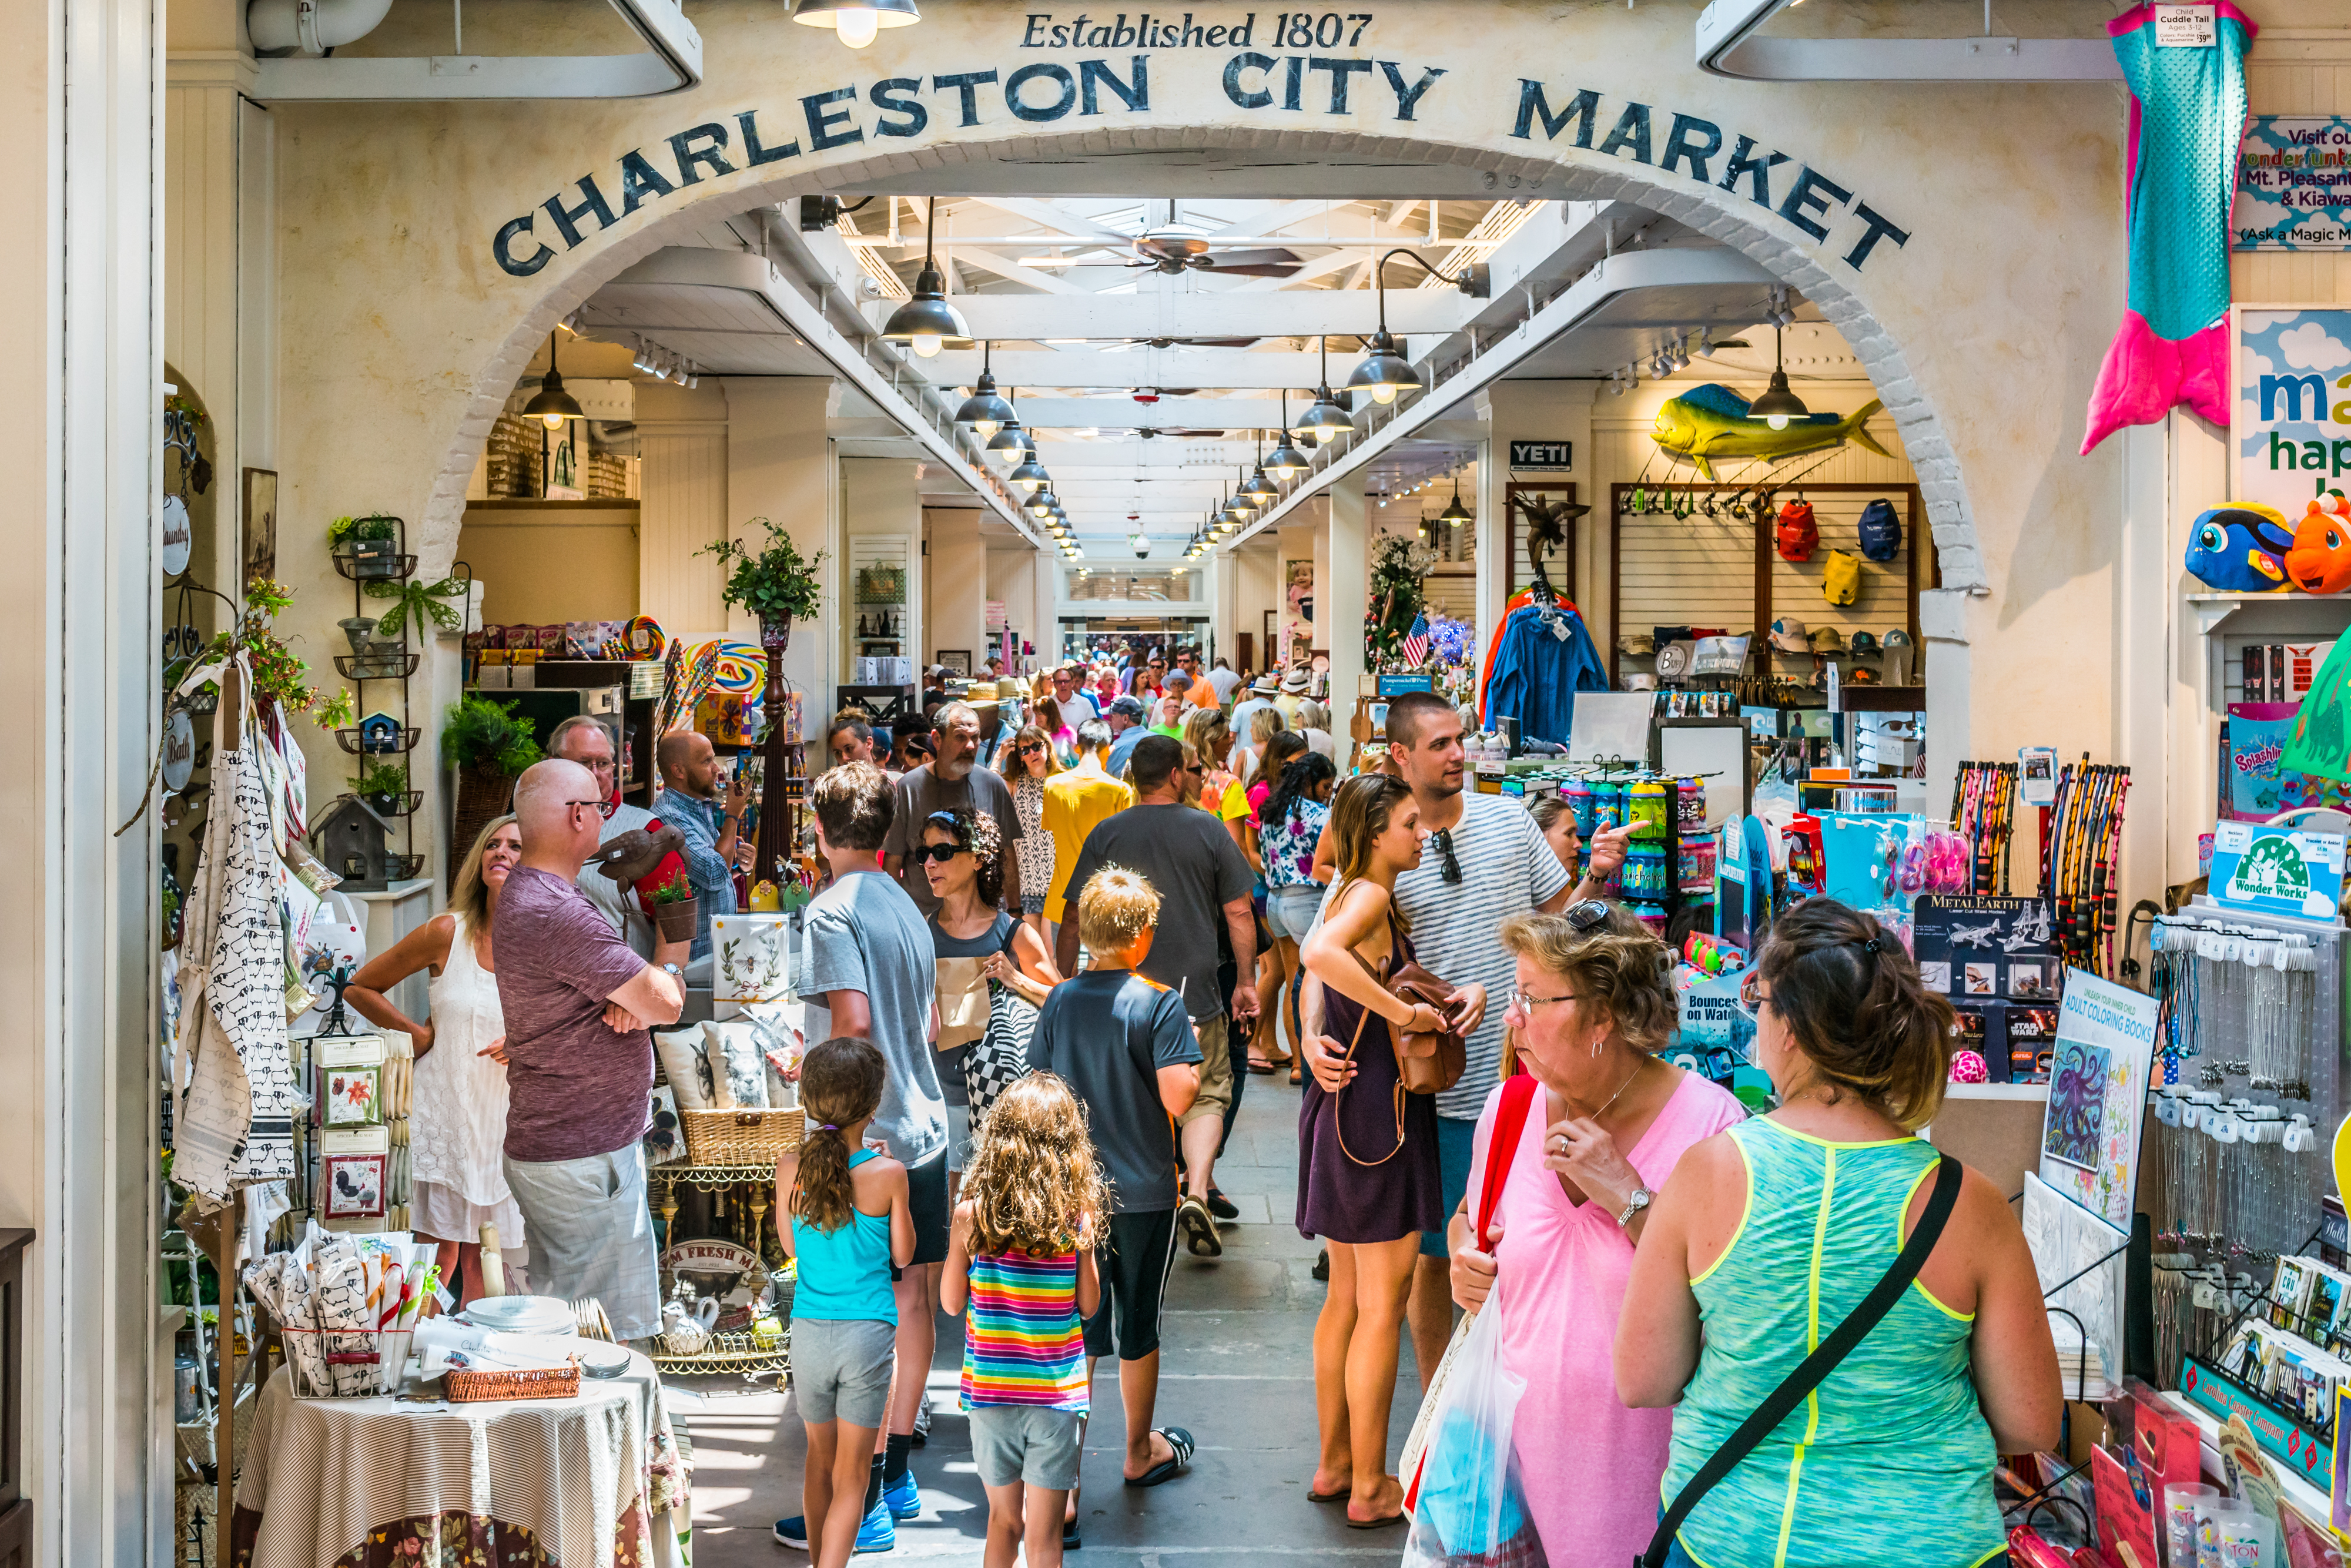 This Is Why You Need to Go to the Historic Charleston City Market